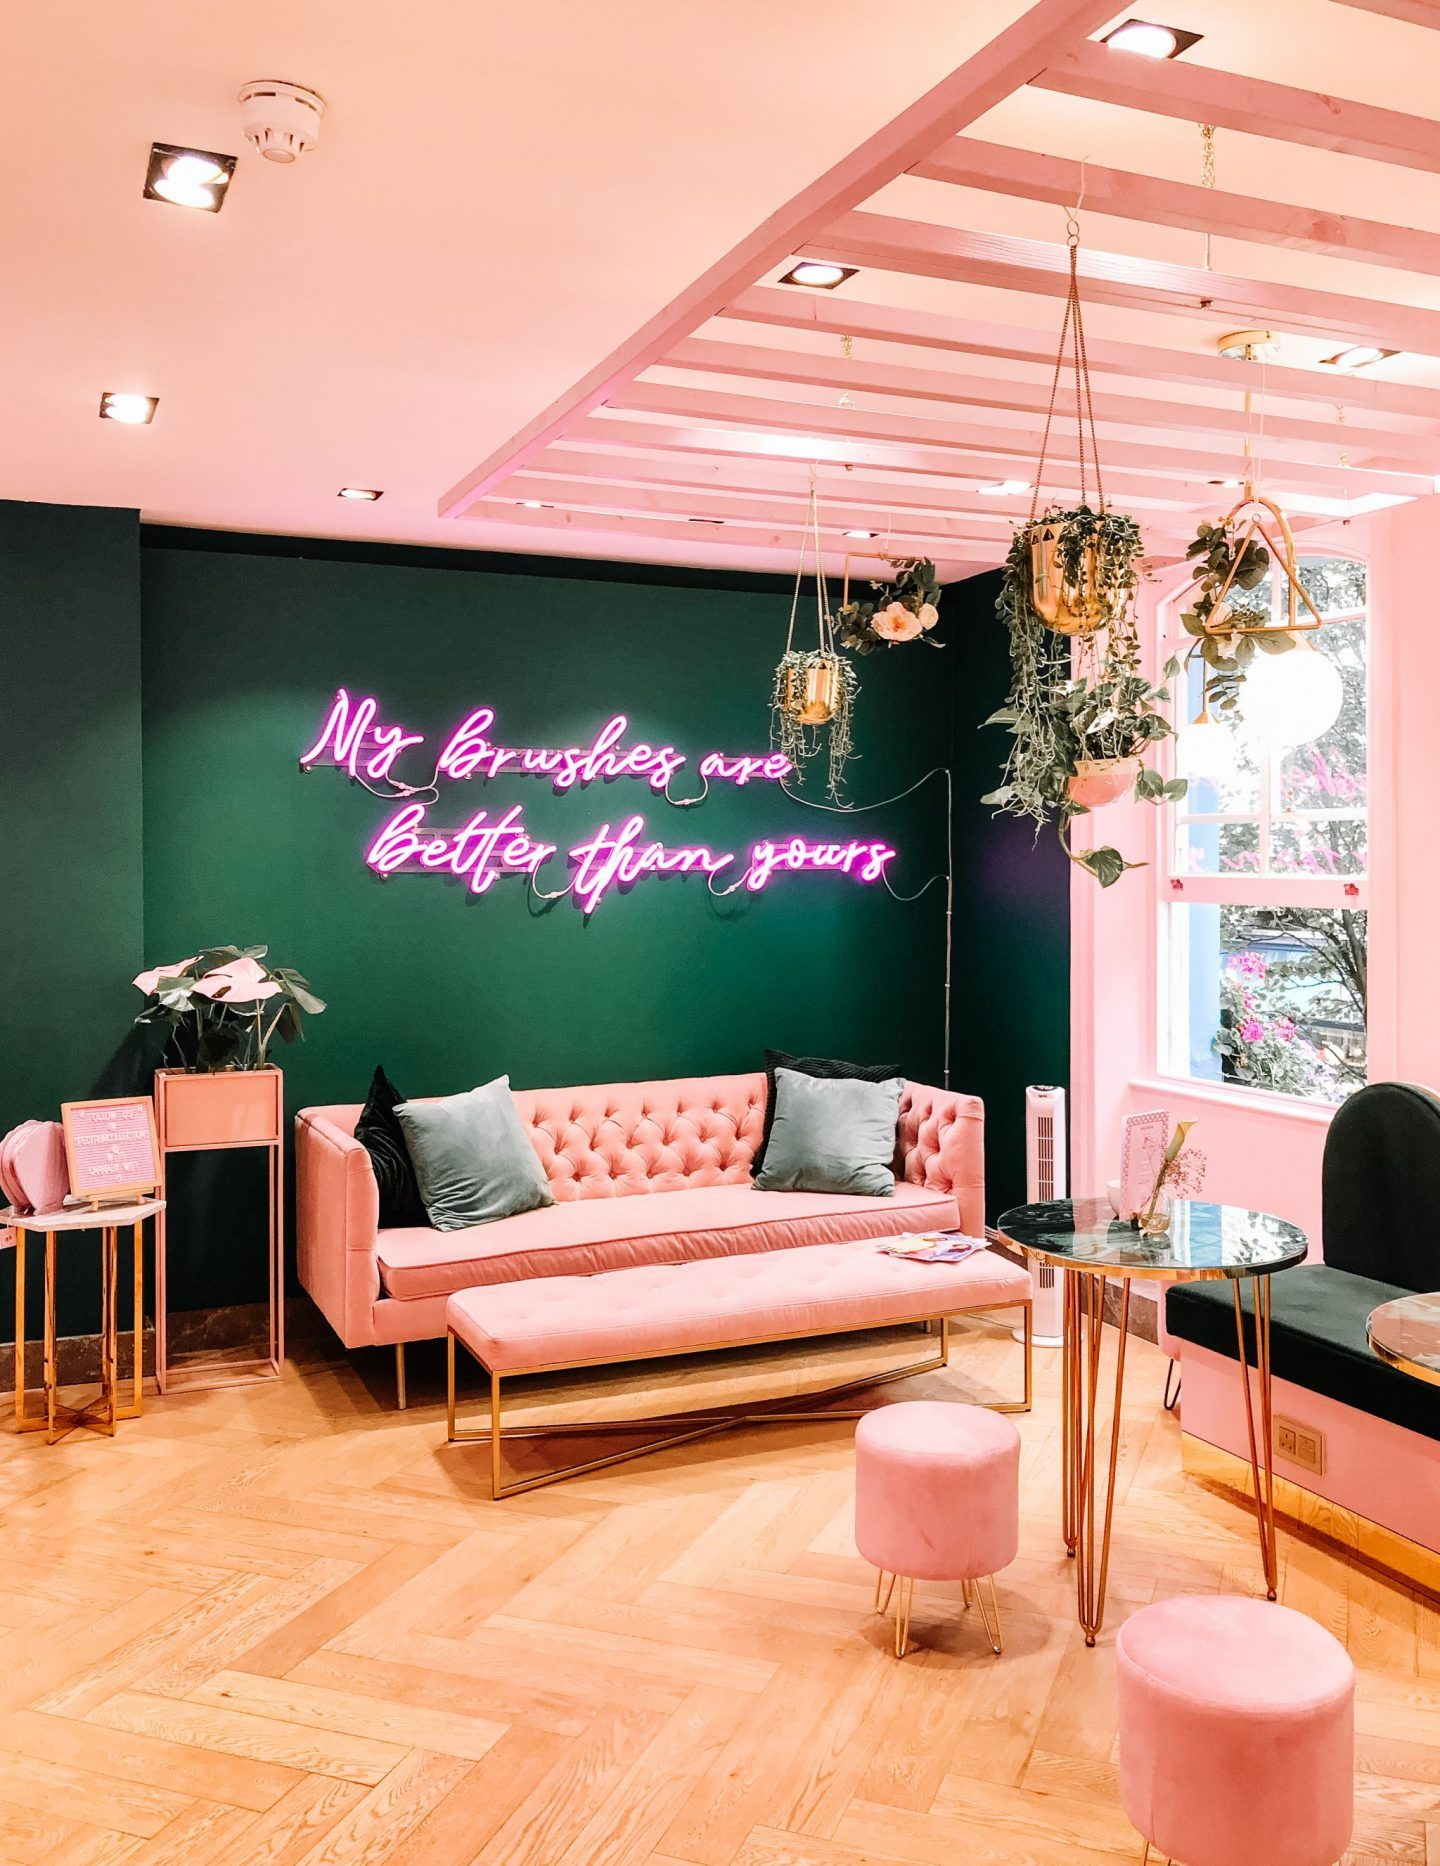 The most popular Instagrammable coffee shops and blogger friendly cafes in London, with pink lattes and floral displays you'll love. Where to have coffee in London, prettiest cafes in London. Pink and rose gold decor inspiration.   Looking for the most instagrammable spots in London? I've picked my favourites.   #Hayleyhall #Londoncafes #prettylondon #instagrammablelondon